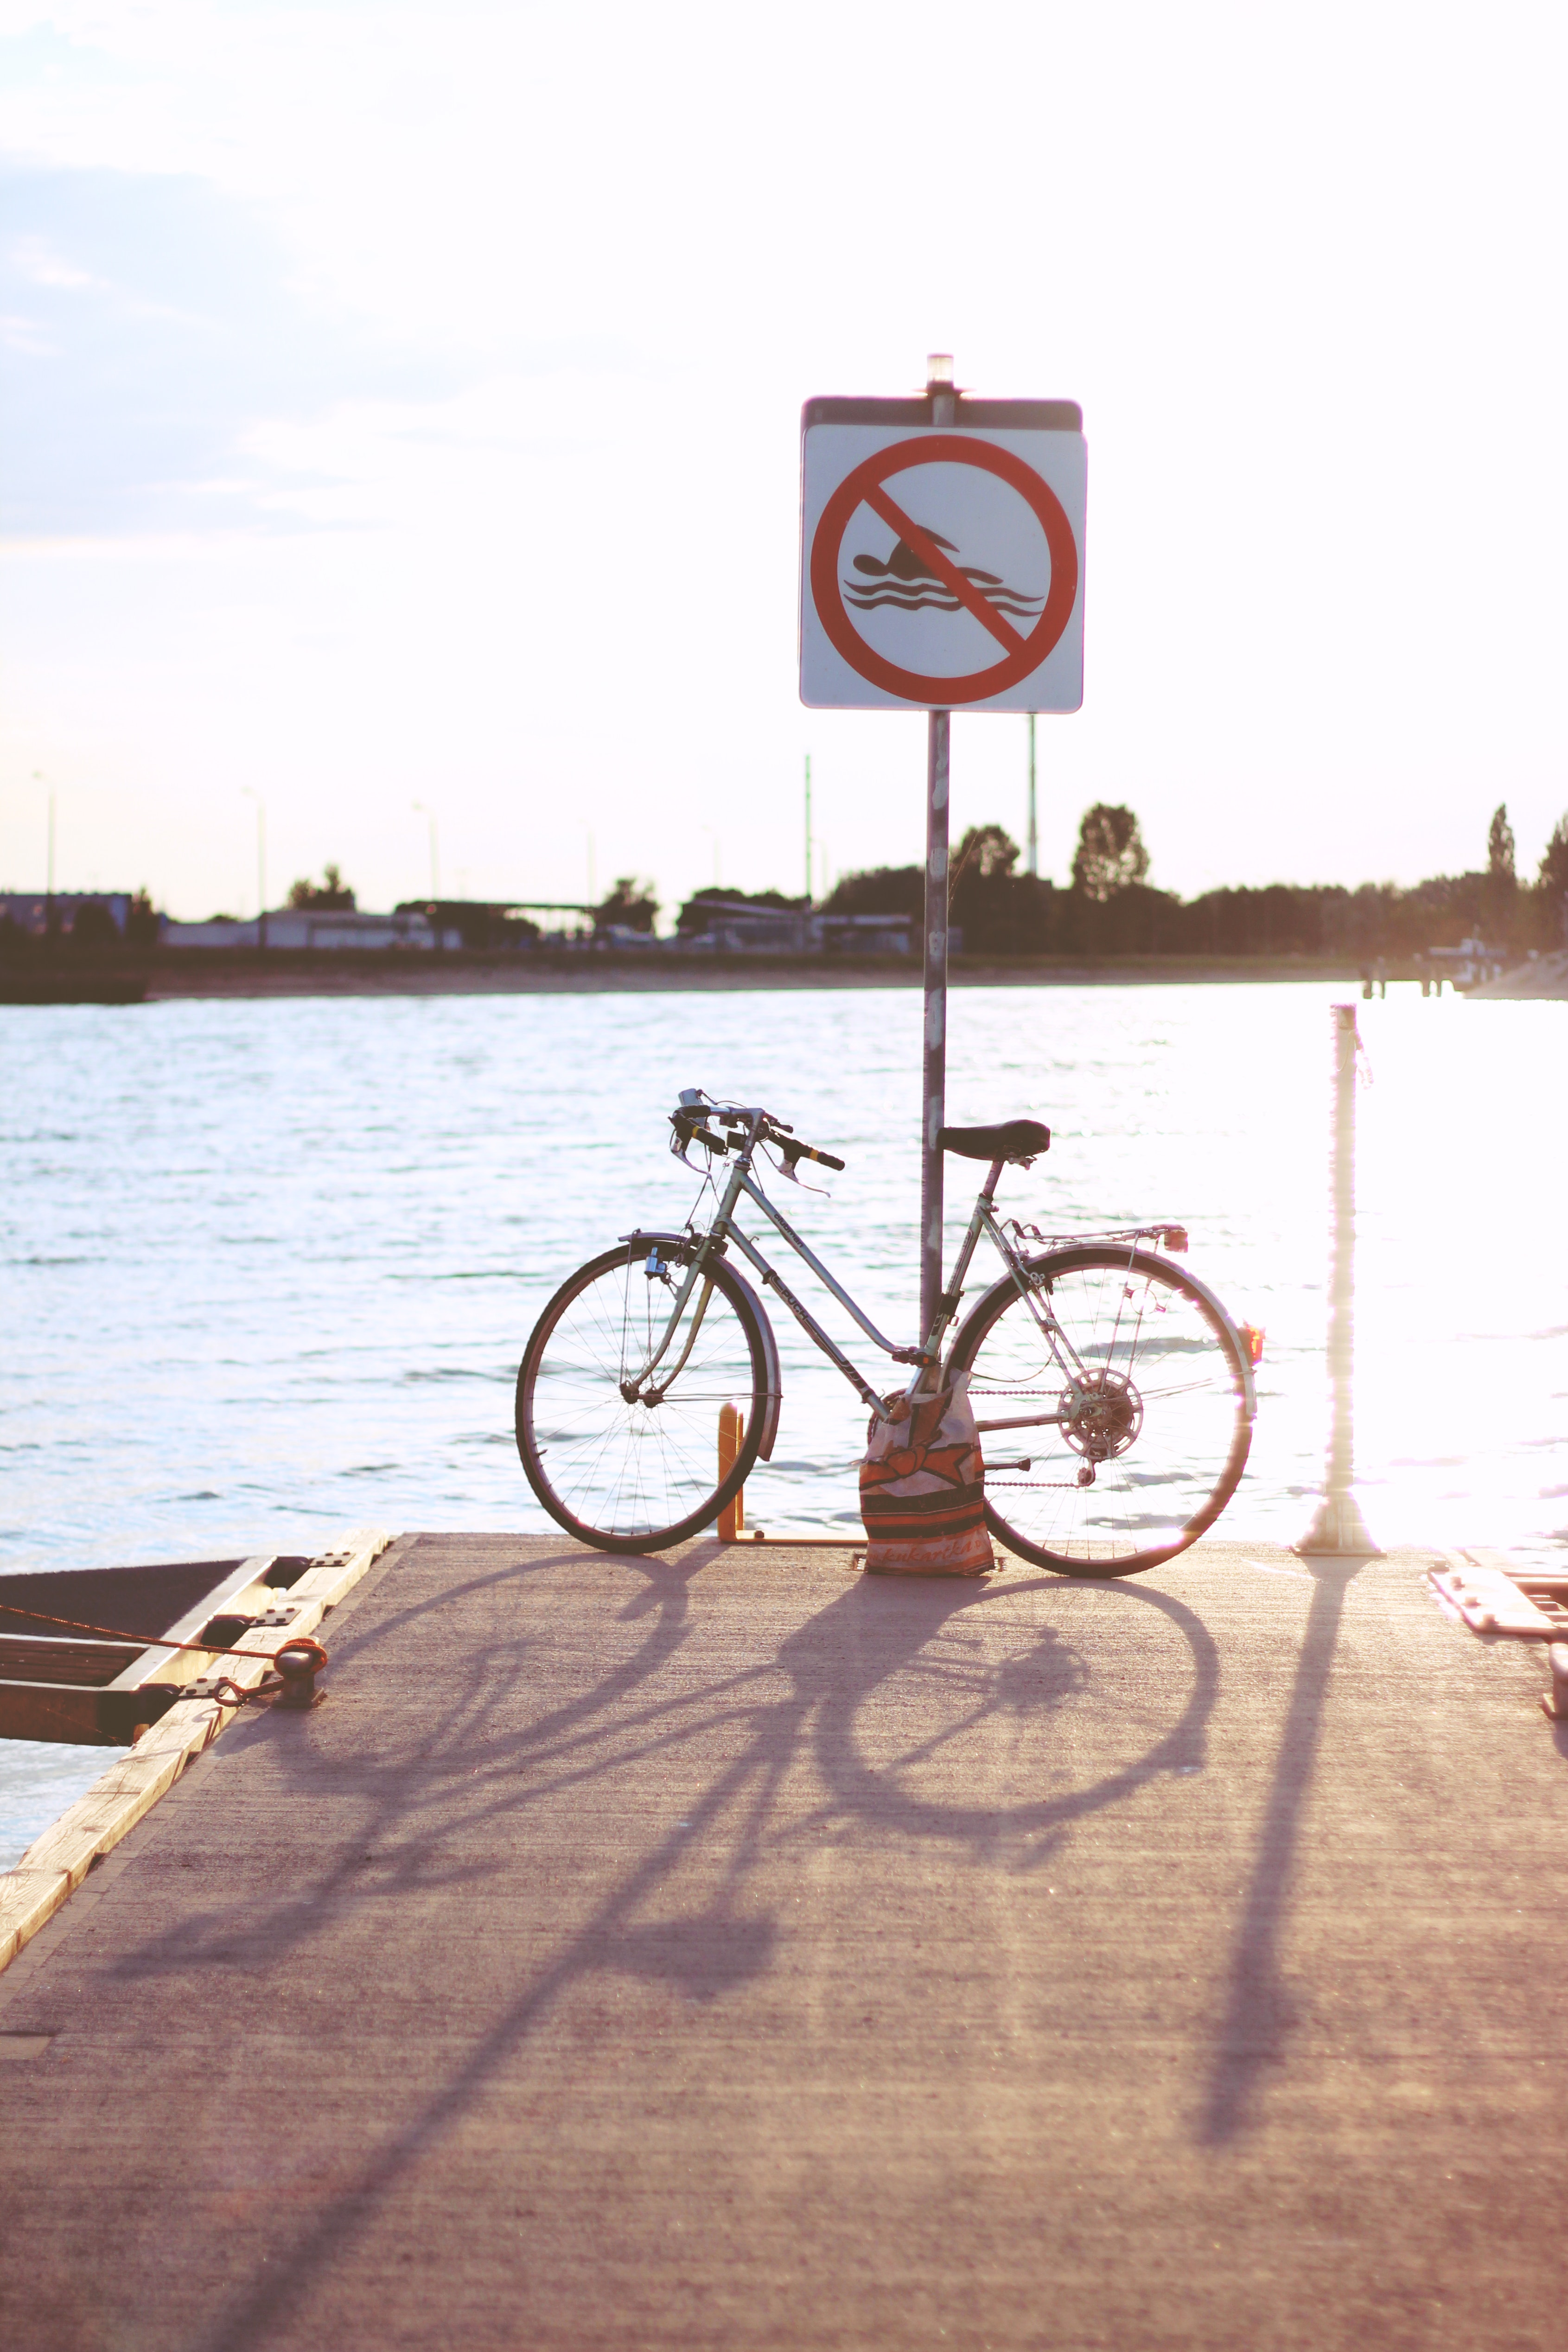 Sunset & bicycle, Beach, Road, Water, Vehicle, HQ Photo